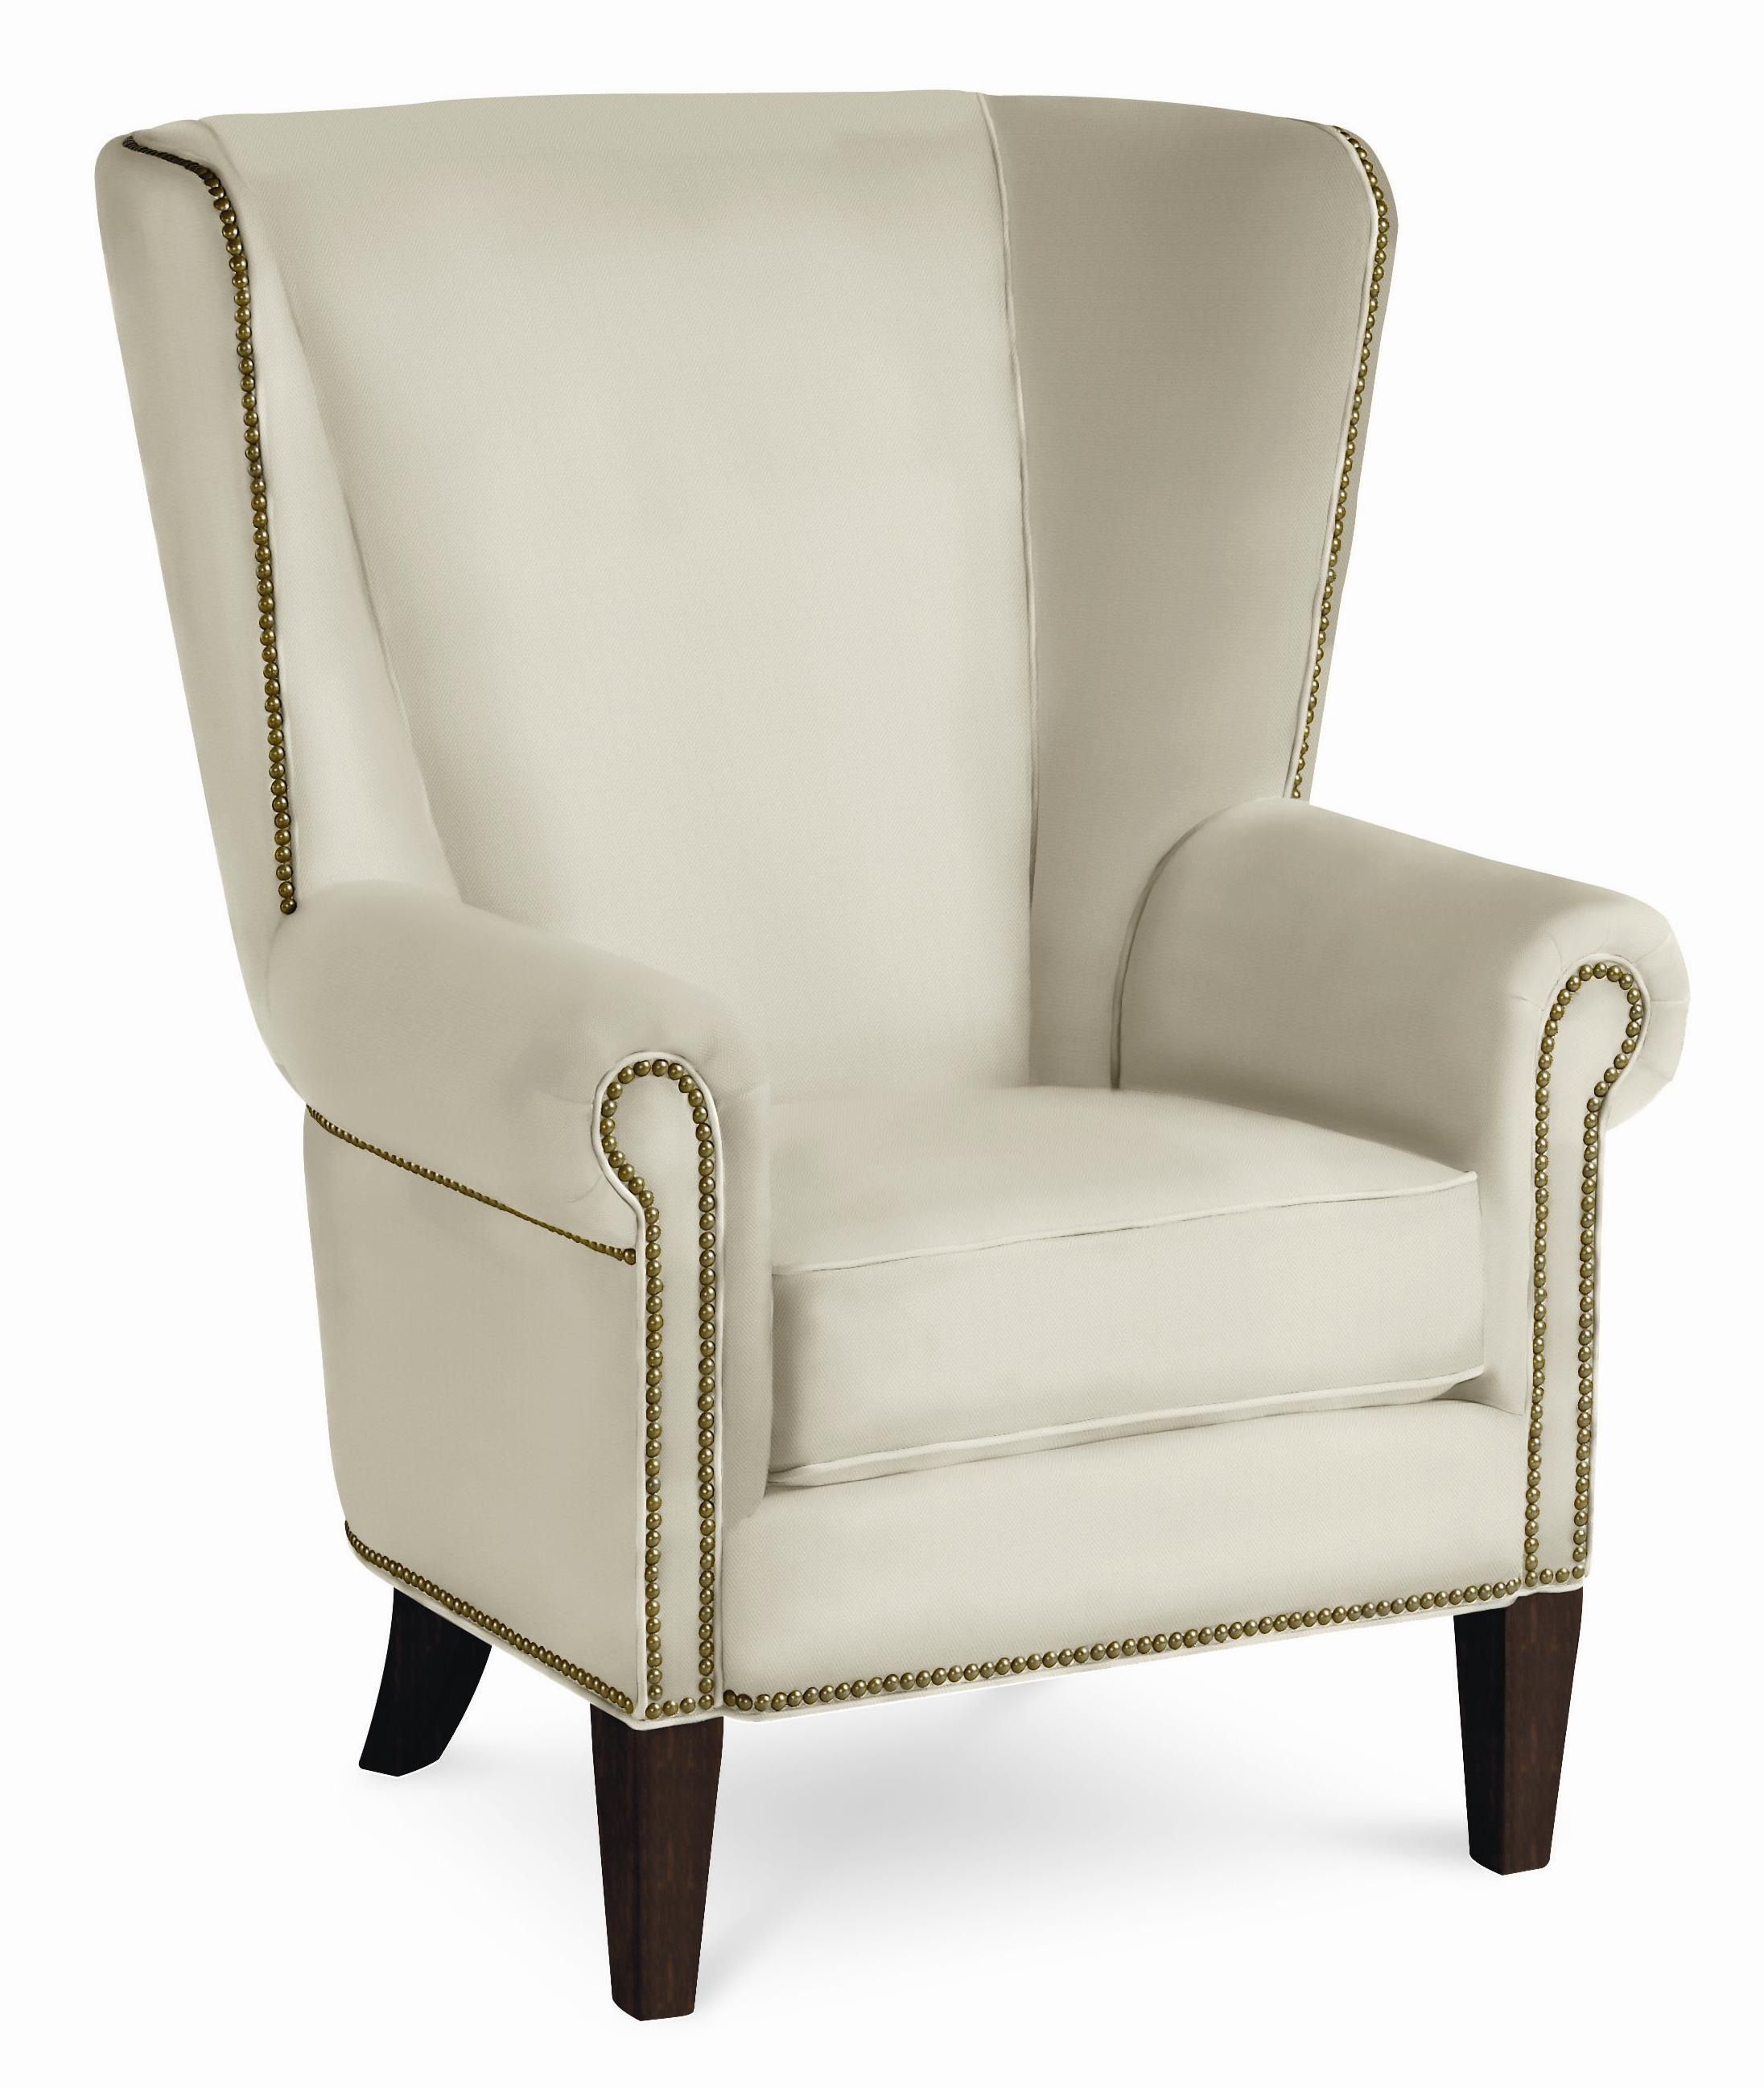 High back living room chair top blog for chair review - High back wing chairs for living room ...